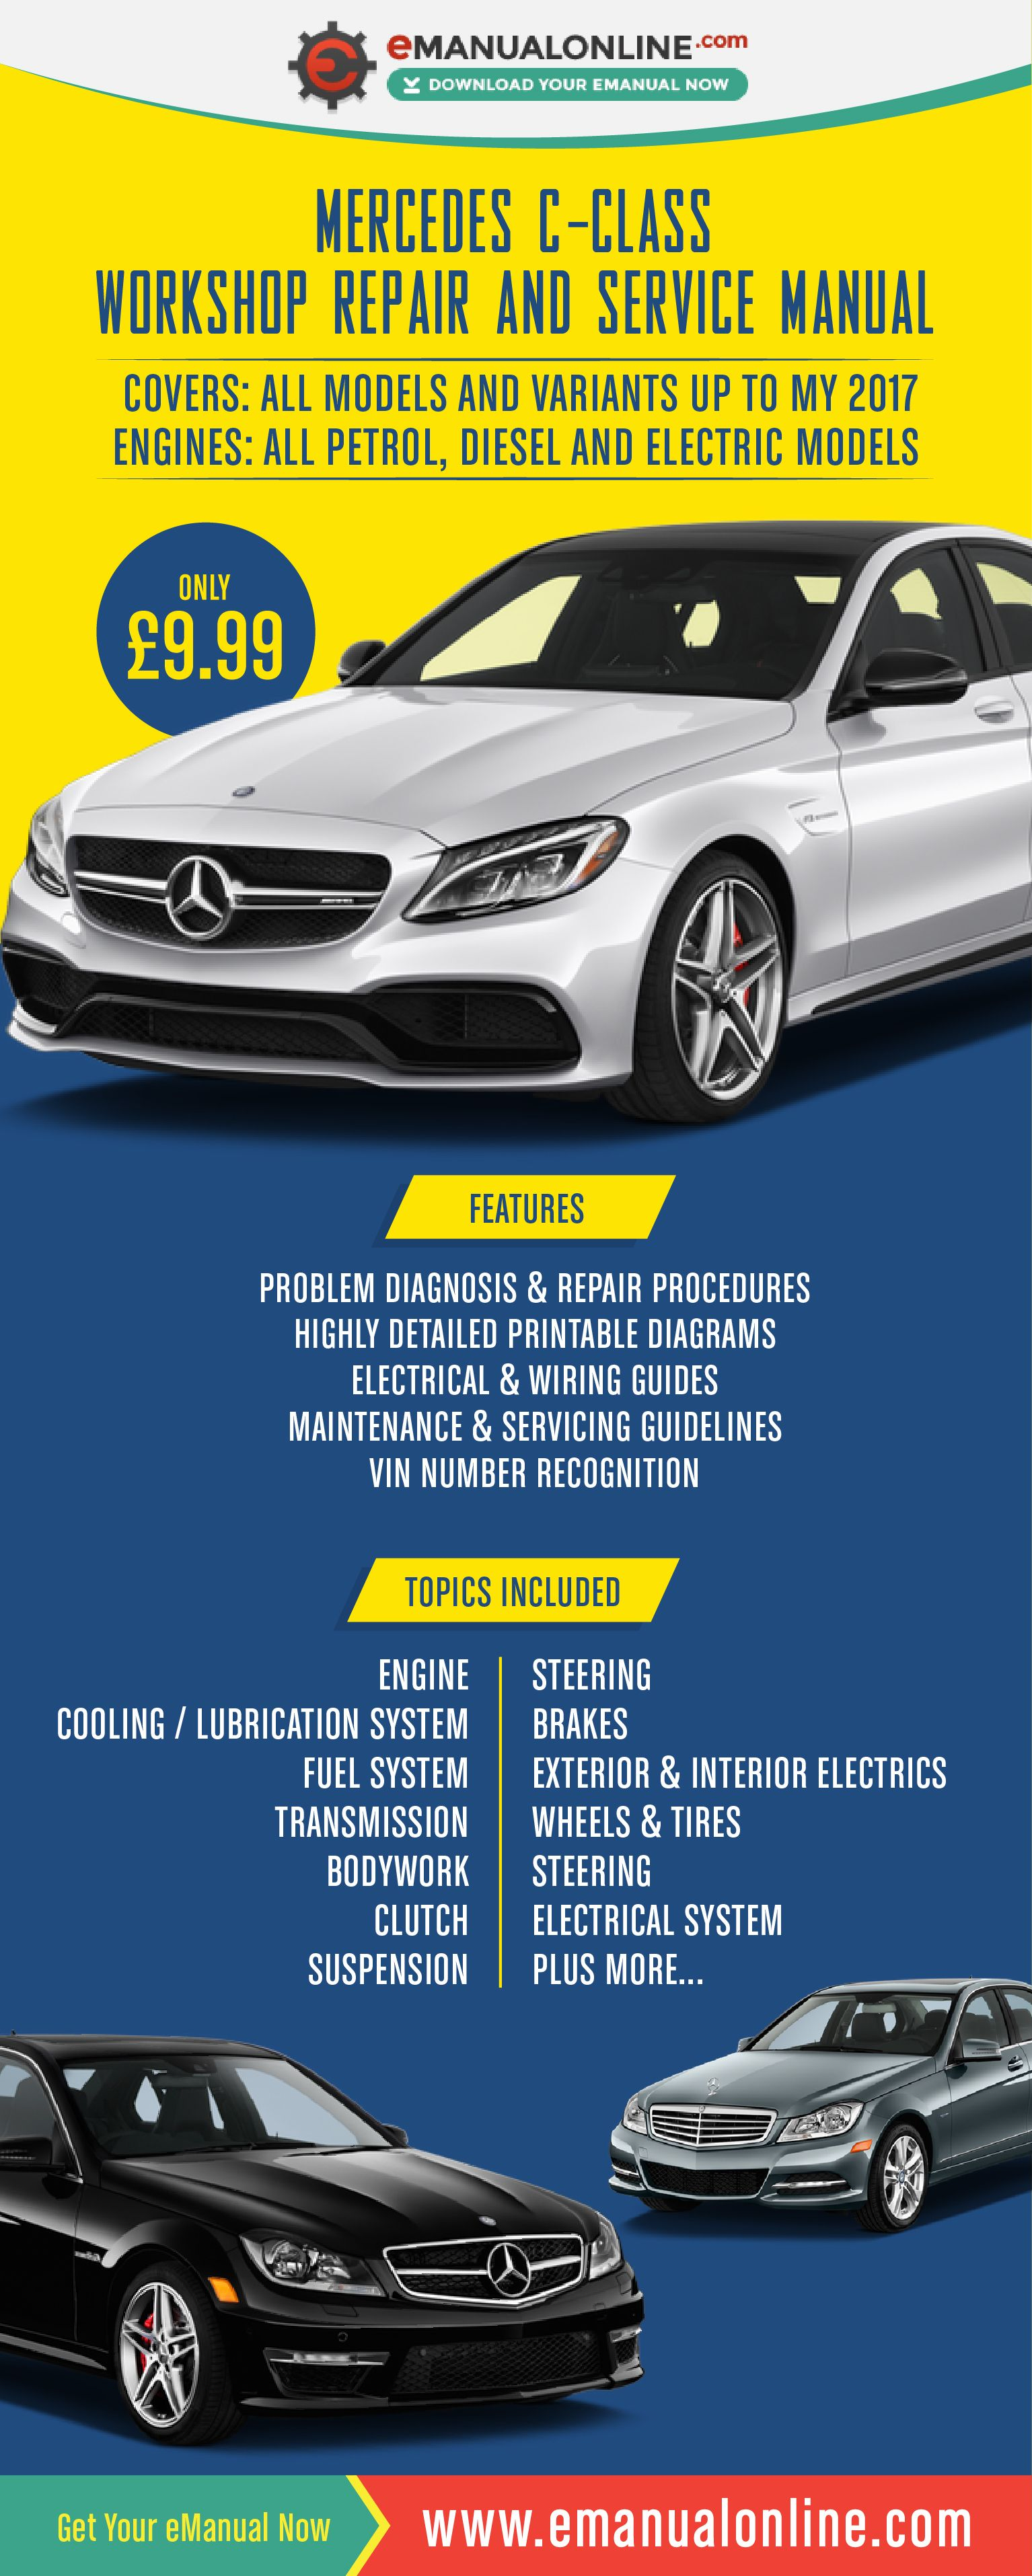 hight resolution of mercedes c class workshop repair and service manual the detailed information contained within this workshop manual is quite simply stu cars bikes